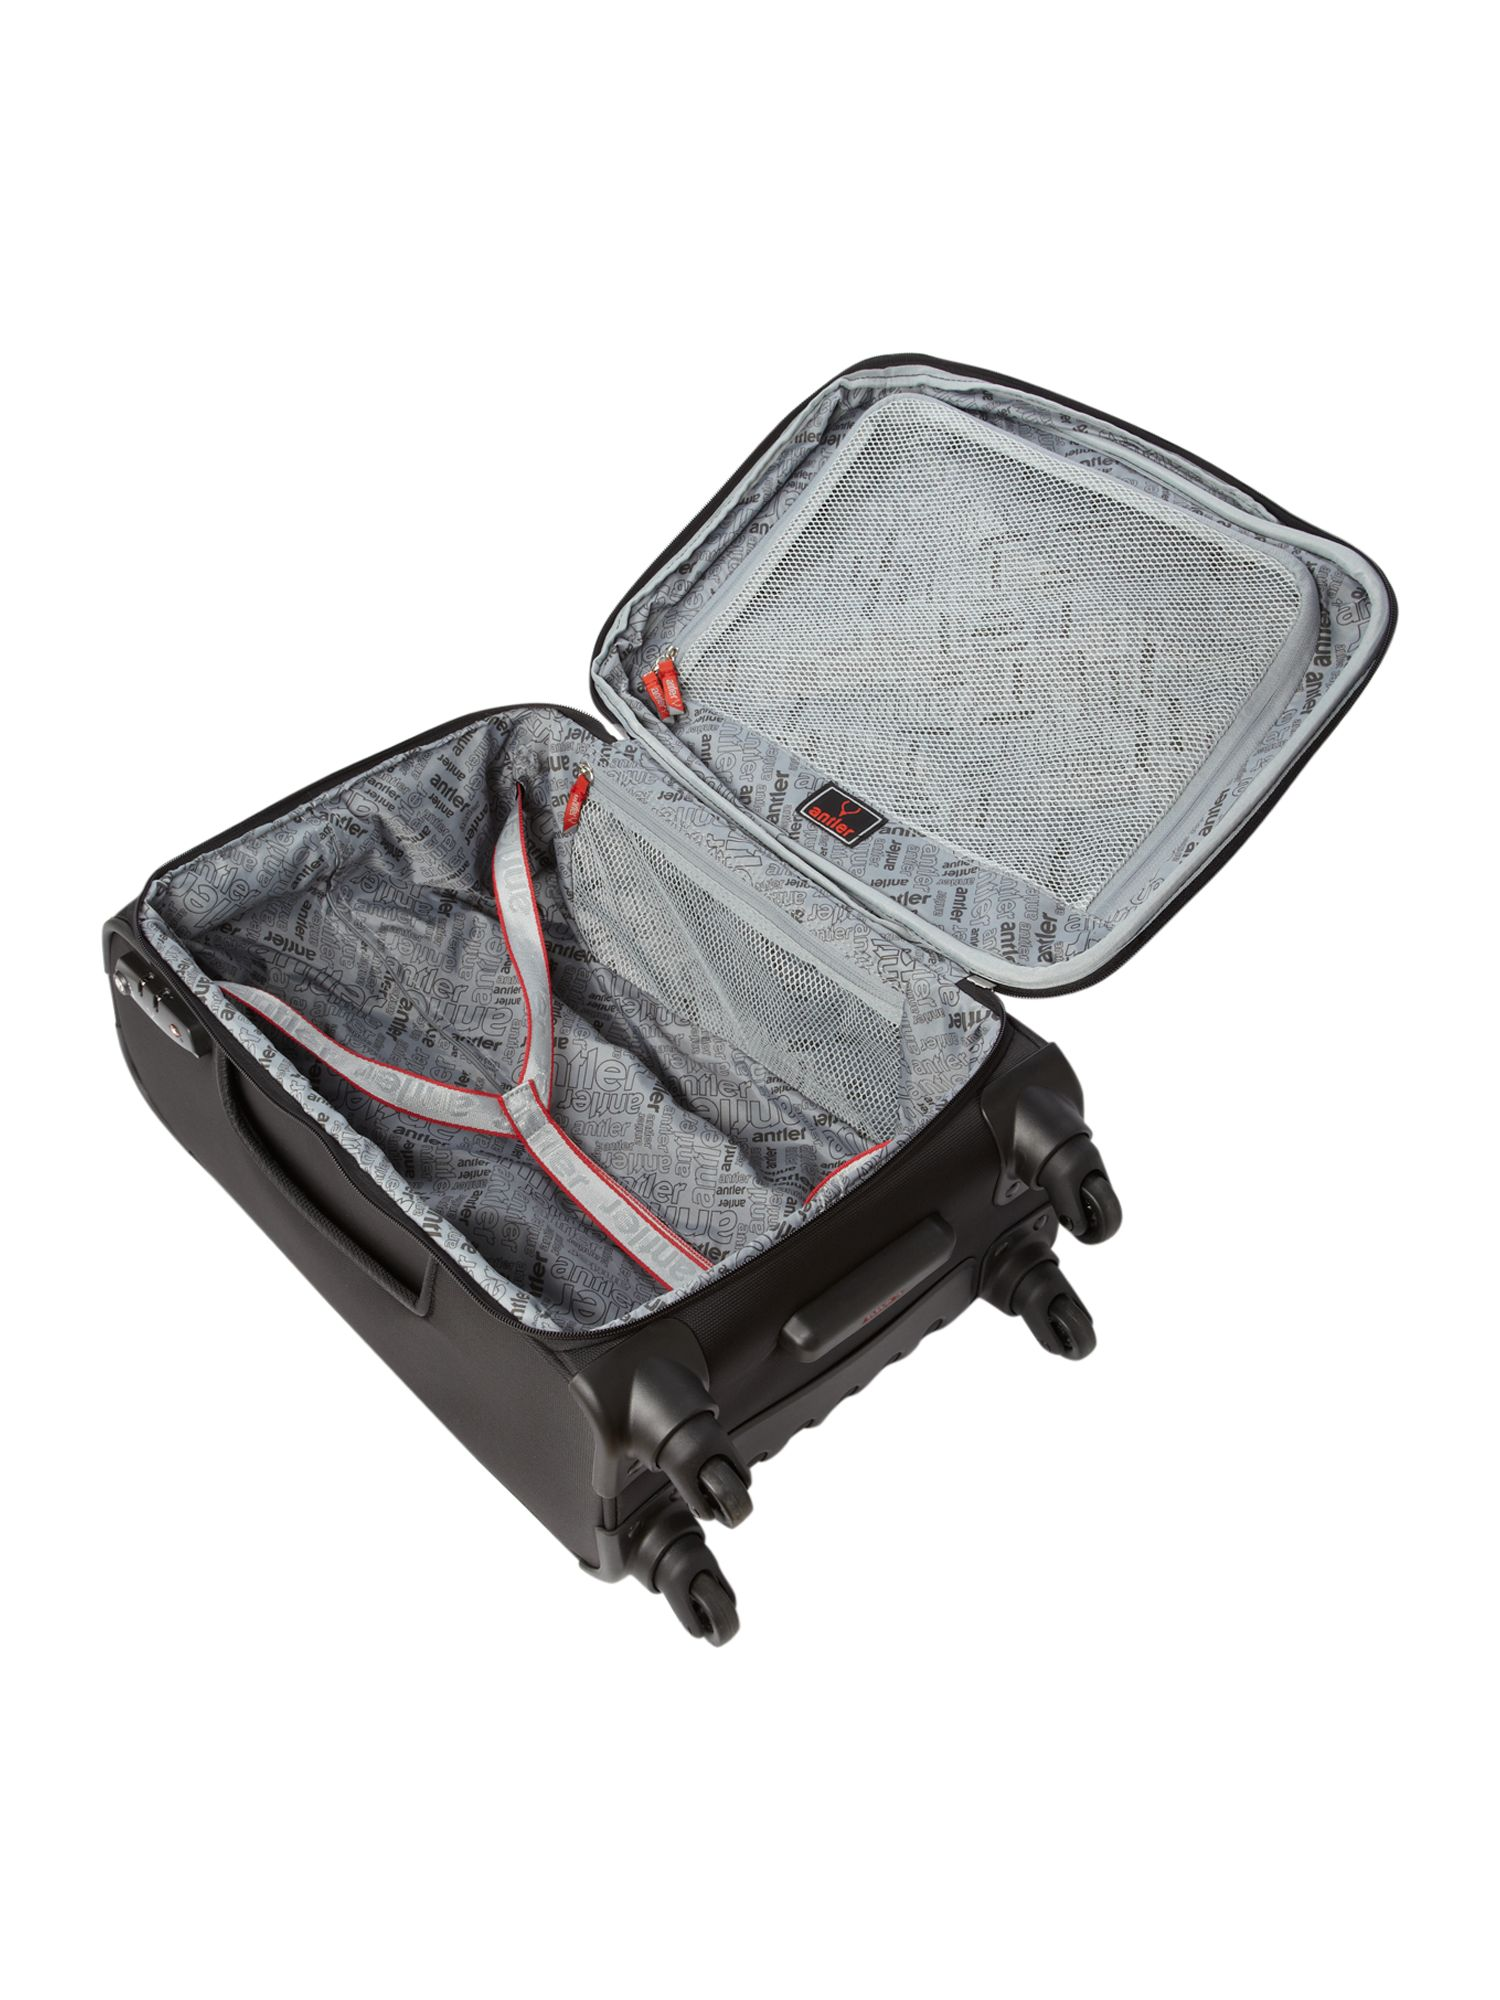 Cyberlite Black & Red 56cm 4 Wheel Case